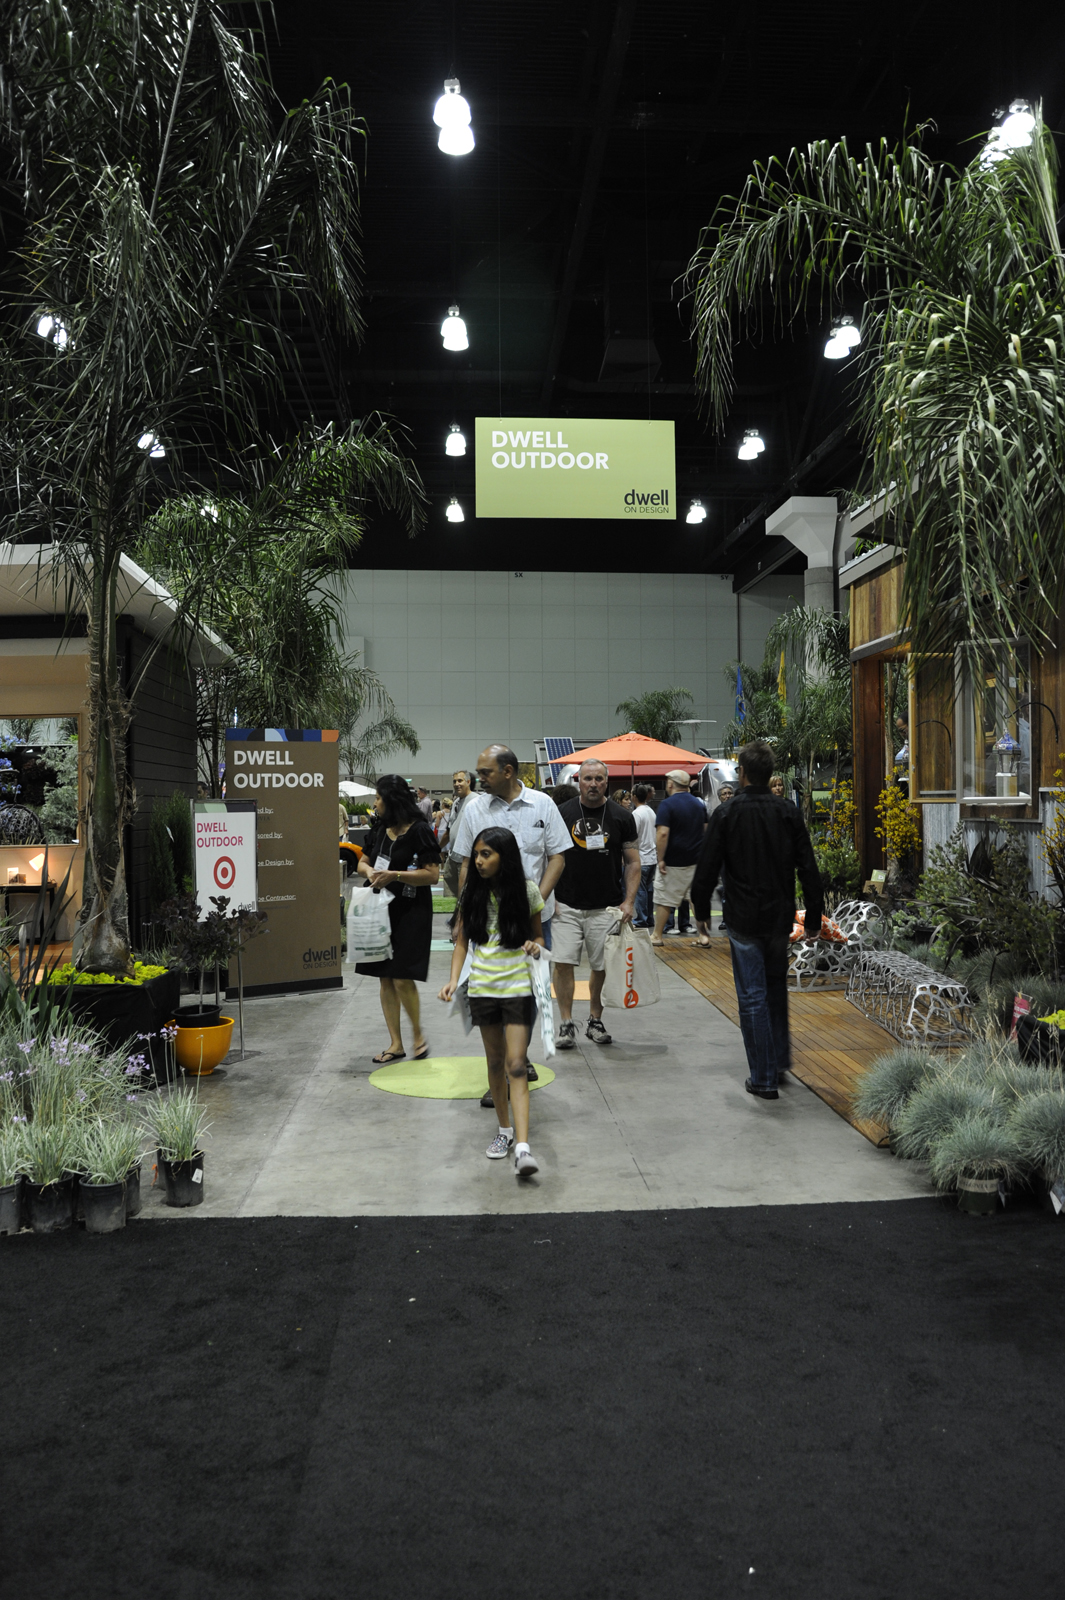 """The entrance to Dwell Outdoor, located in the back left hand side of <a href=""""http://dwellondesign.com/"""">DwellonDesign</a> at the LA Convention Center."""